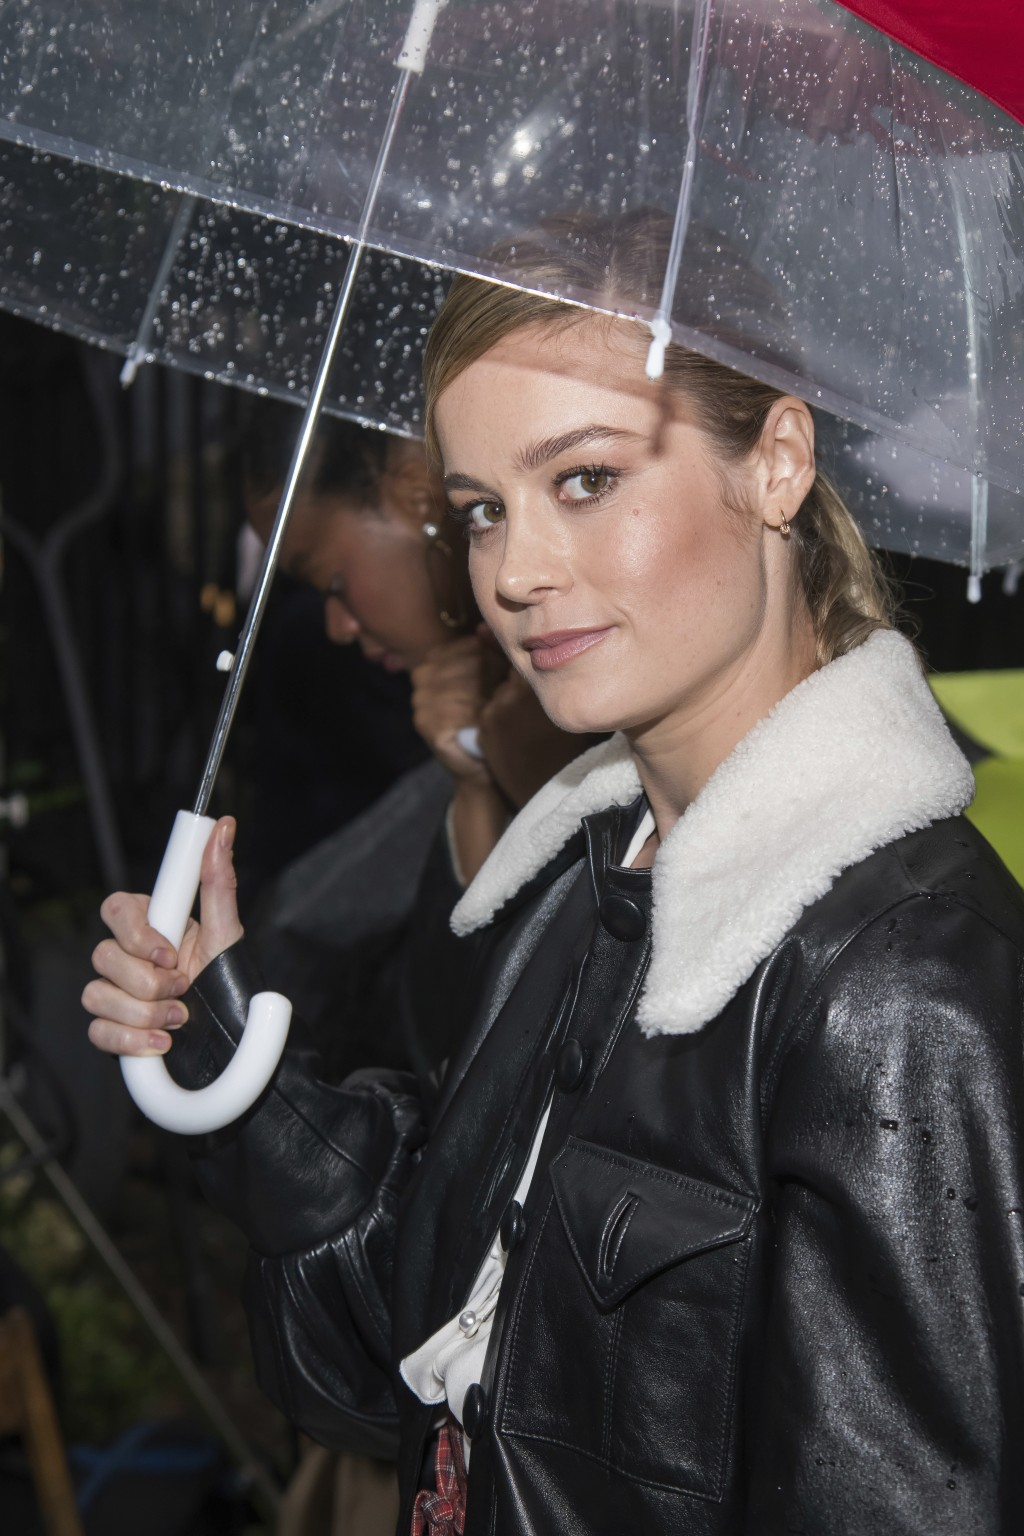 Brie Larson attends the Rodarte show, which was held outside in the rain, during Fashion Week on Sunday, Sept. 9, 2018 in New York. (Photo by Charles